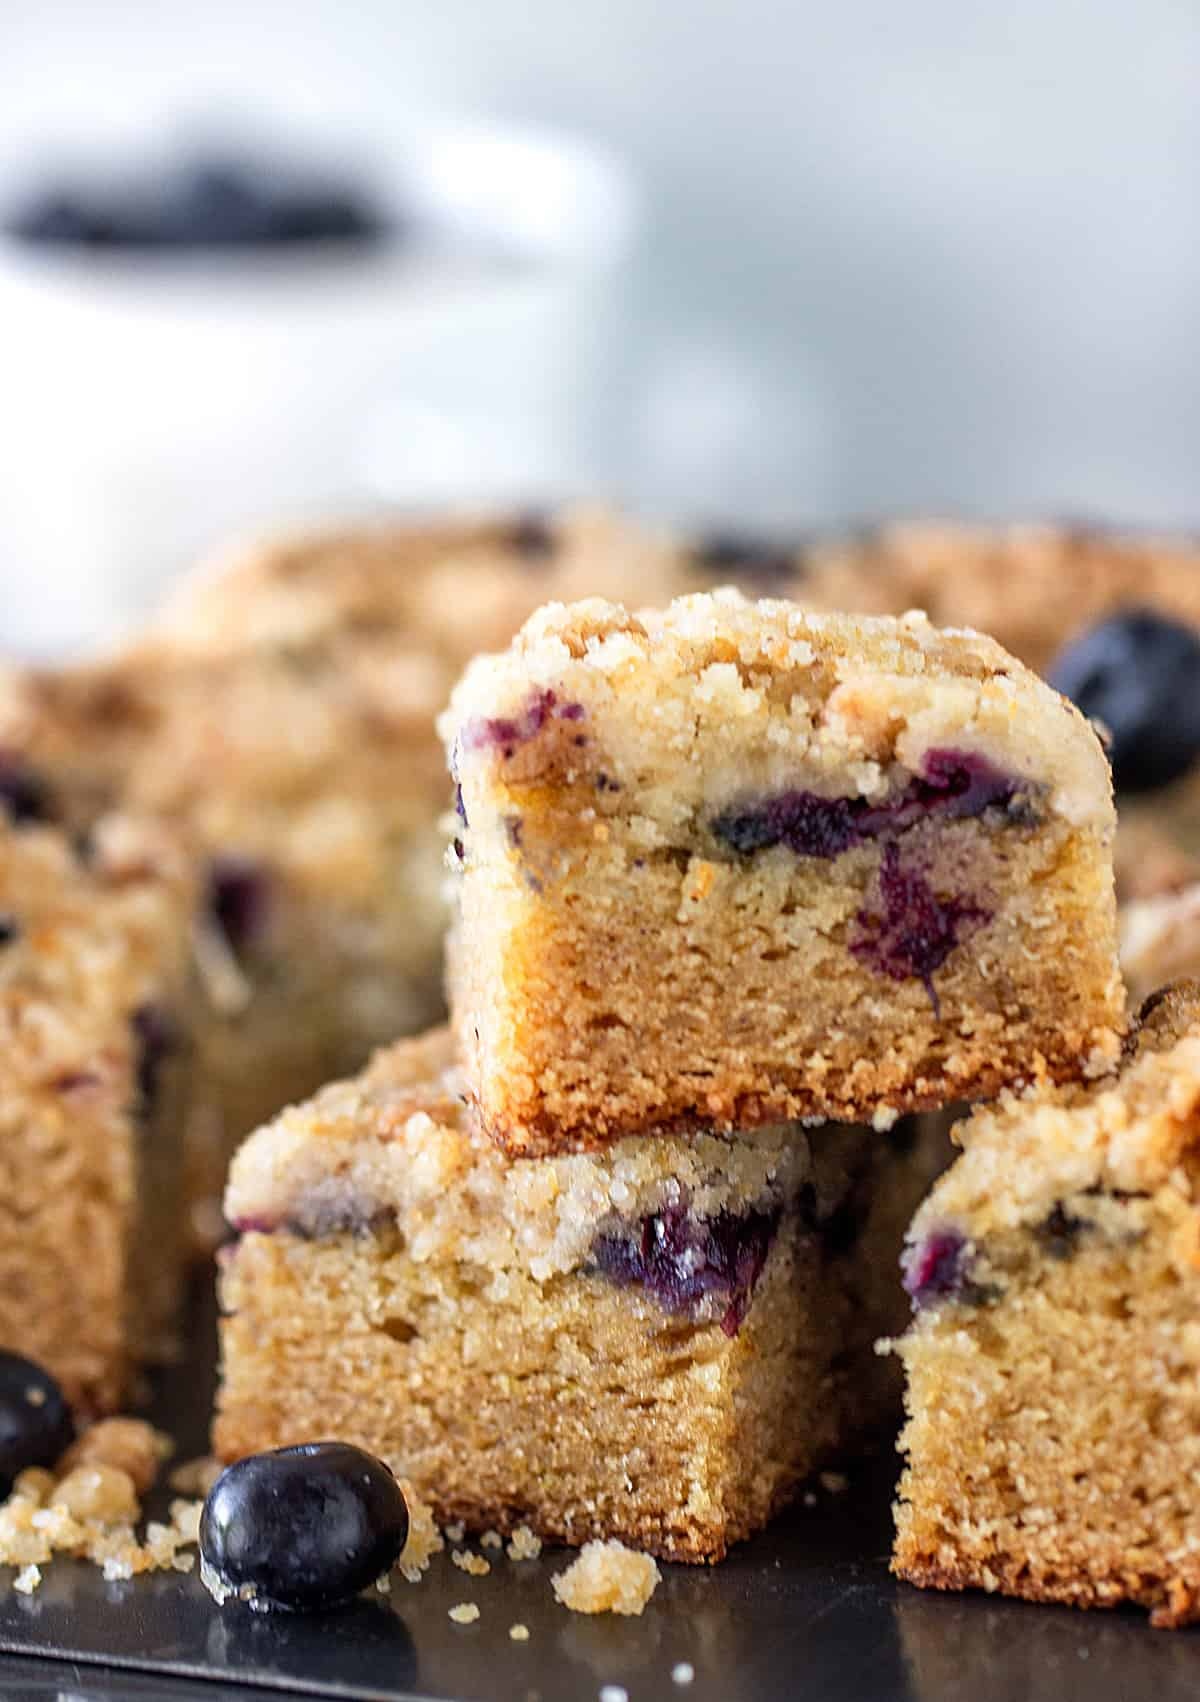 Crumb cake squares with blueberries on a metal surface